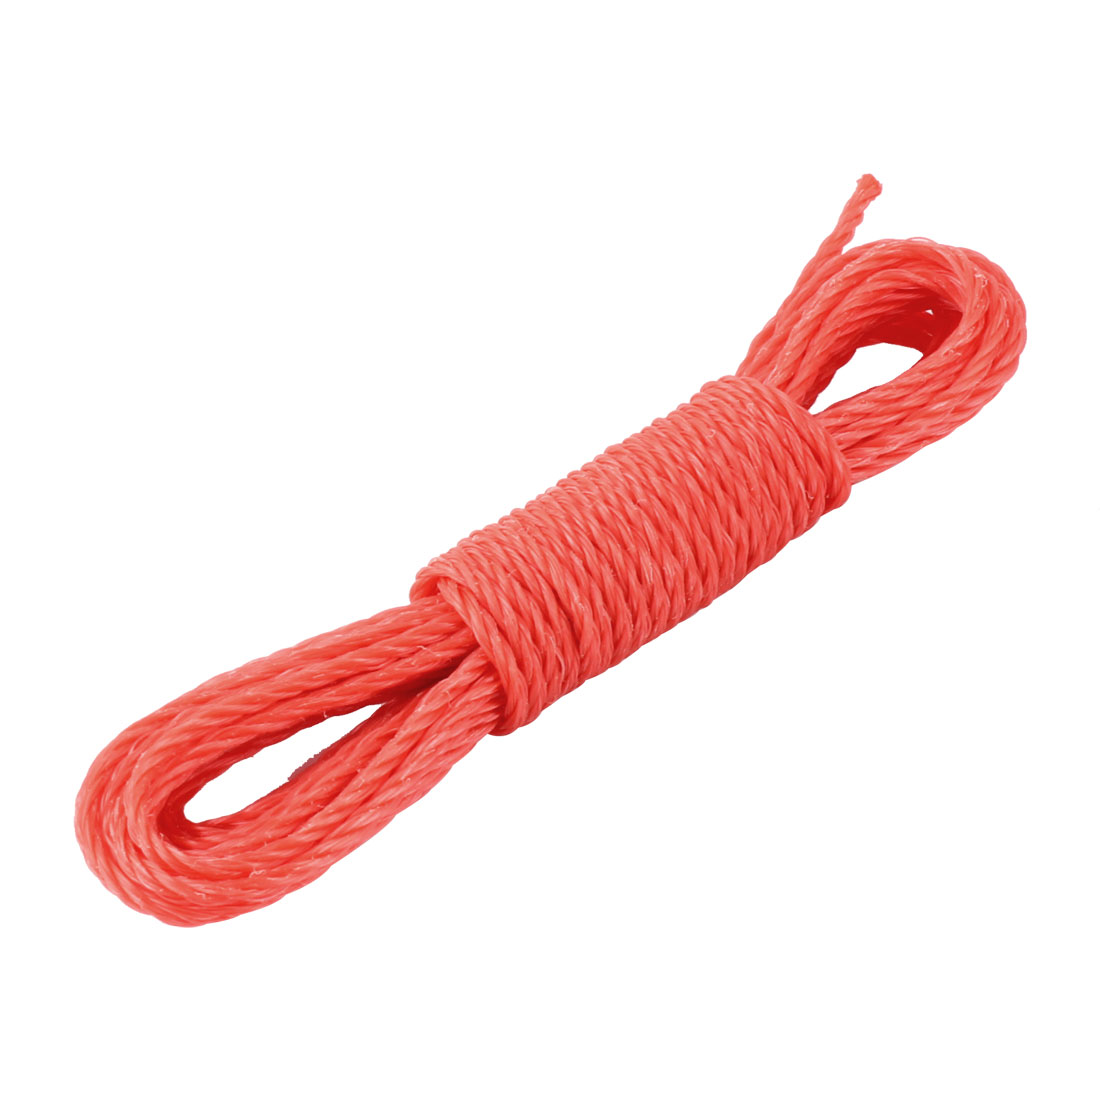 Household Outdoor Nylon String Clothes Line Clothesline Orange Red 5m Length